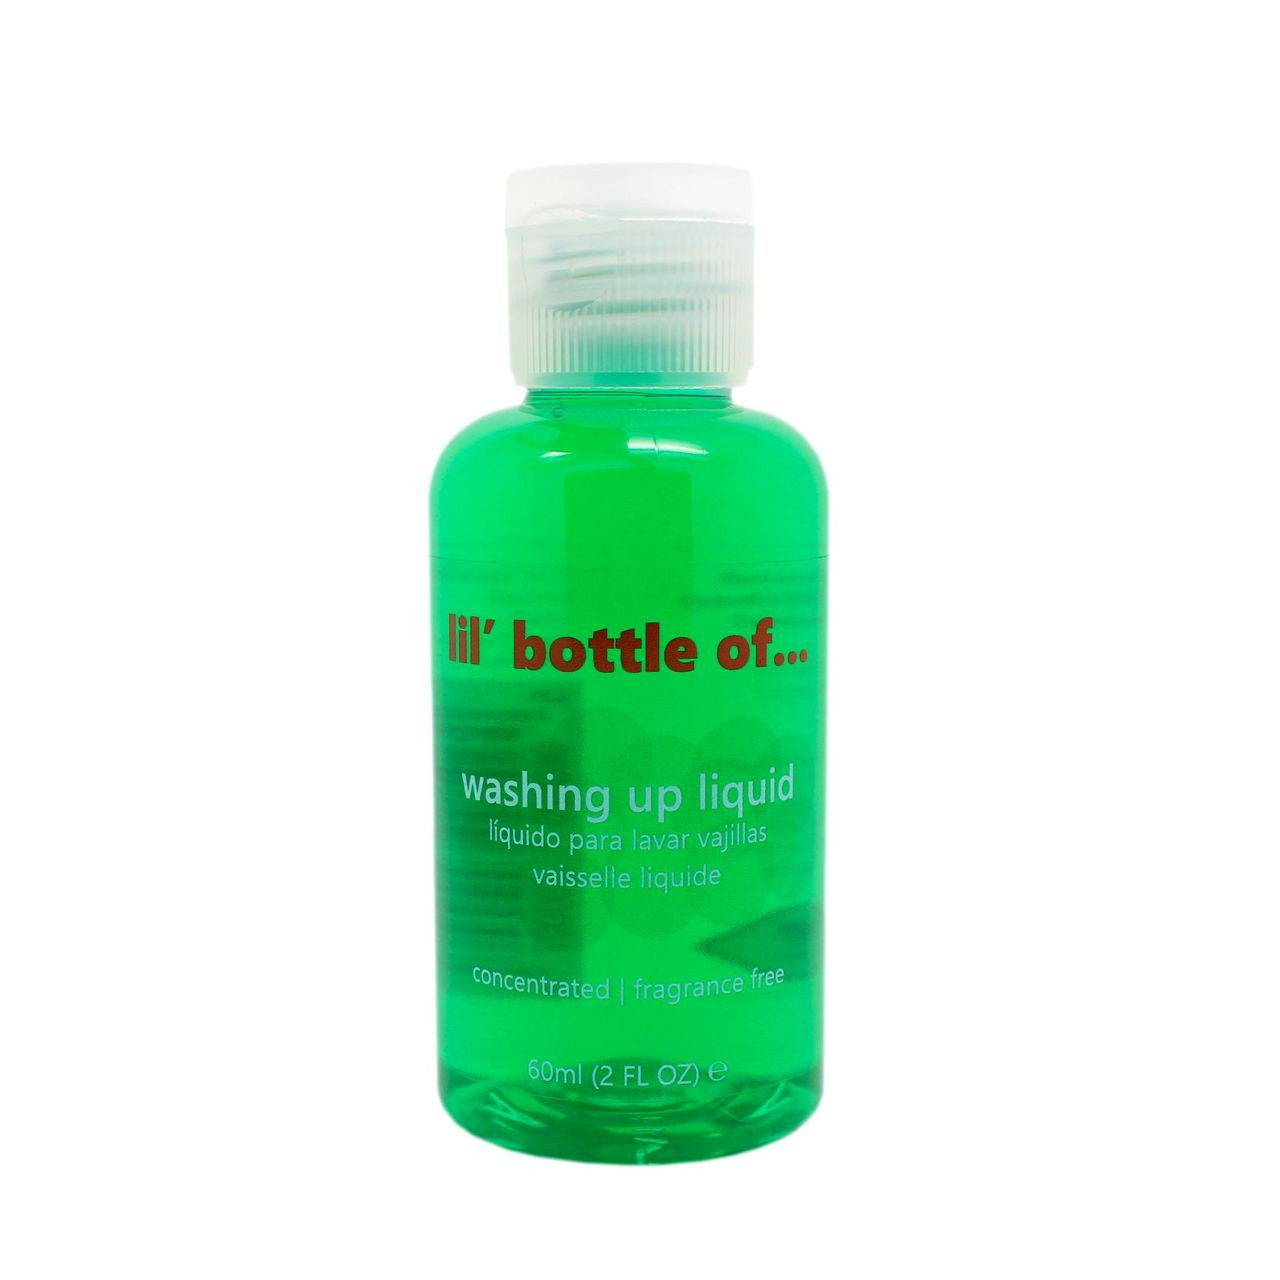 Lil Bottle Of Washing Up Liquid 60ml Mini Travel